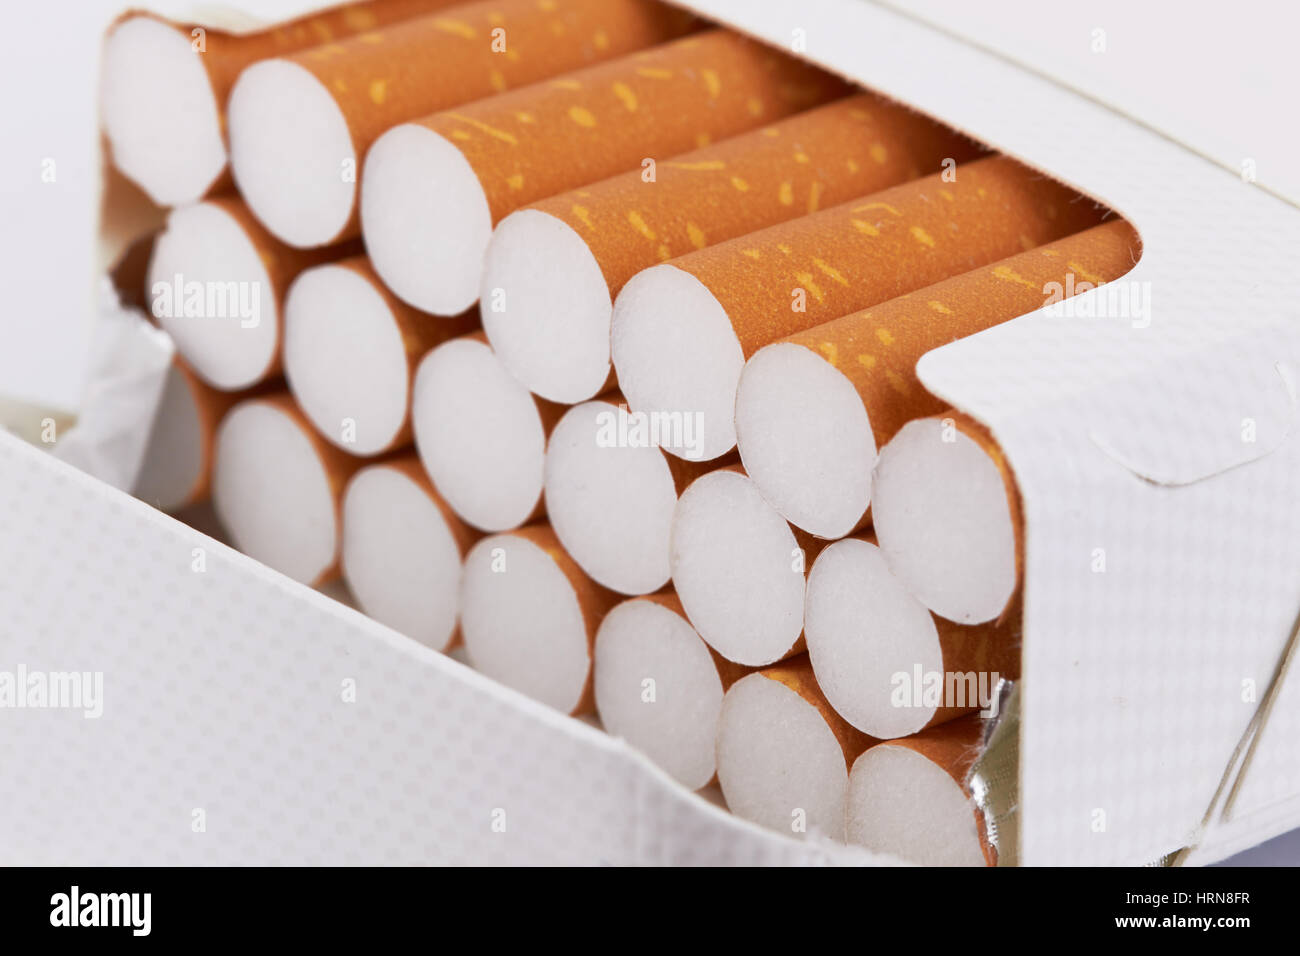 Libre d'un tas de cigarettes en paquet Photo Stock